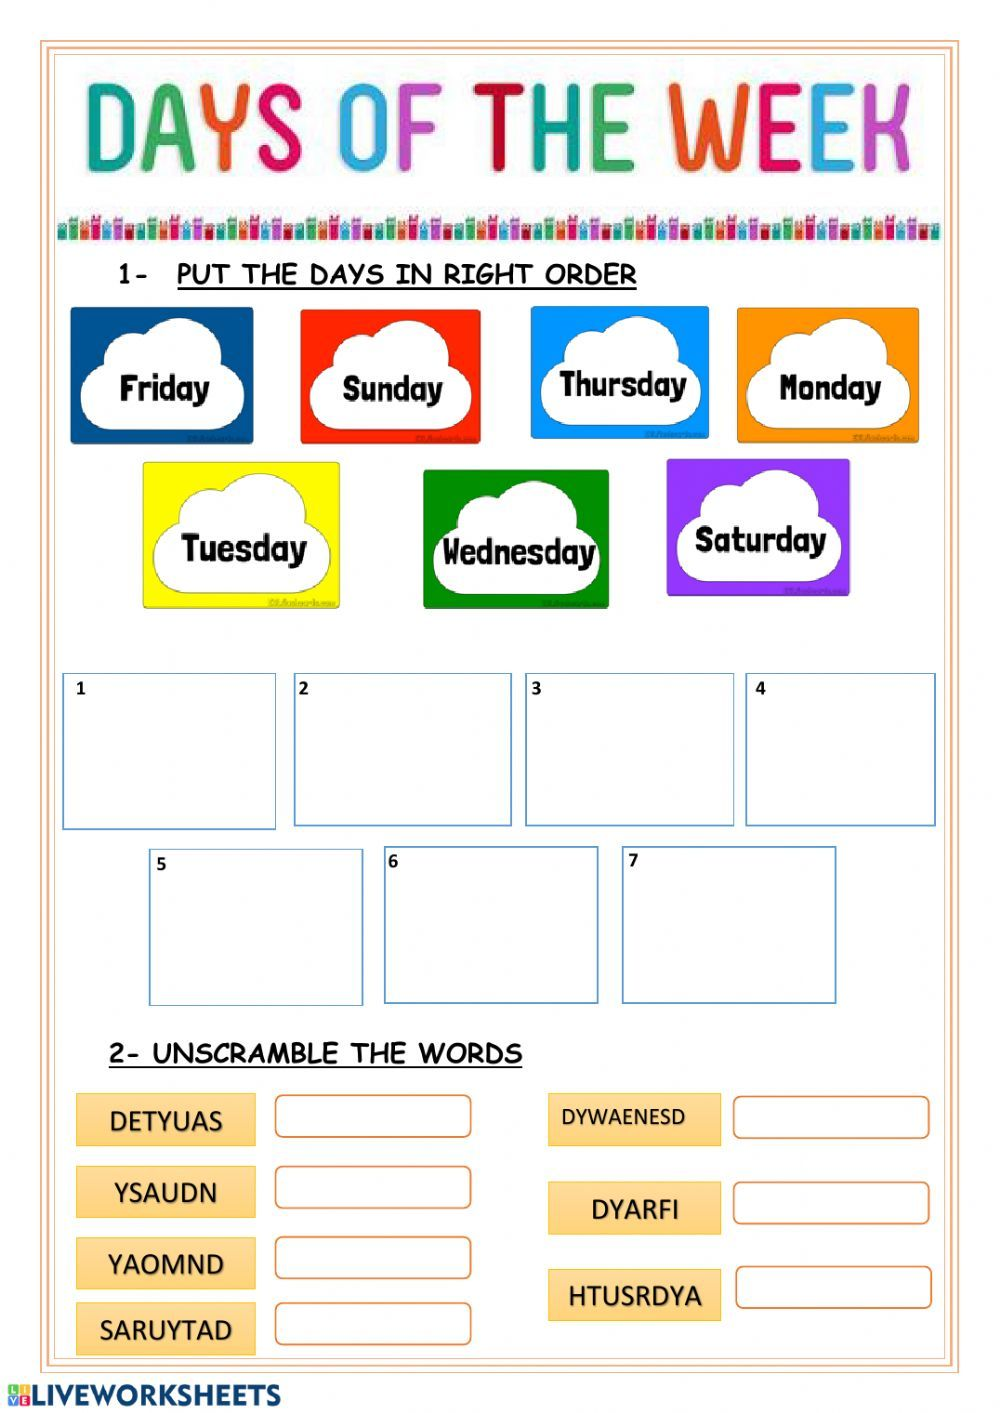 Days Of The Week Interactive And Downloadable Worksheet You Can Do The Exercises Onl English Worksheets For Kids English As A Second Language Preschool Charts Number chart worksheets days